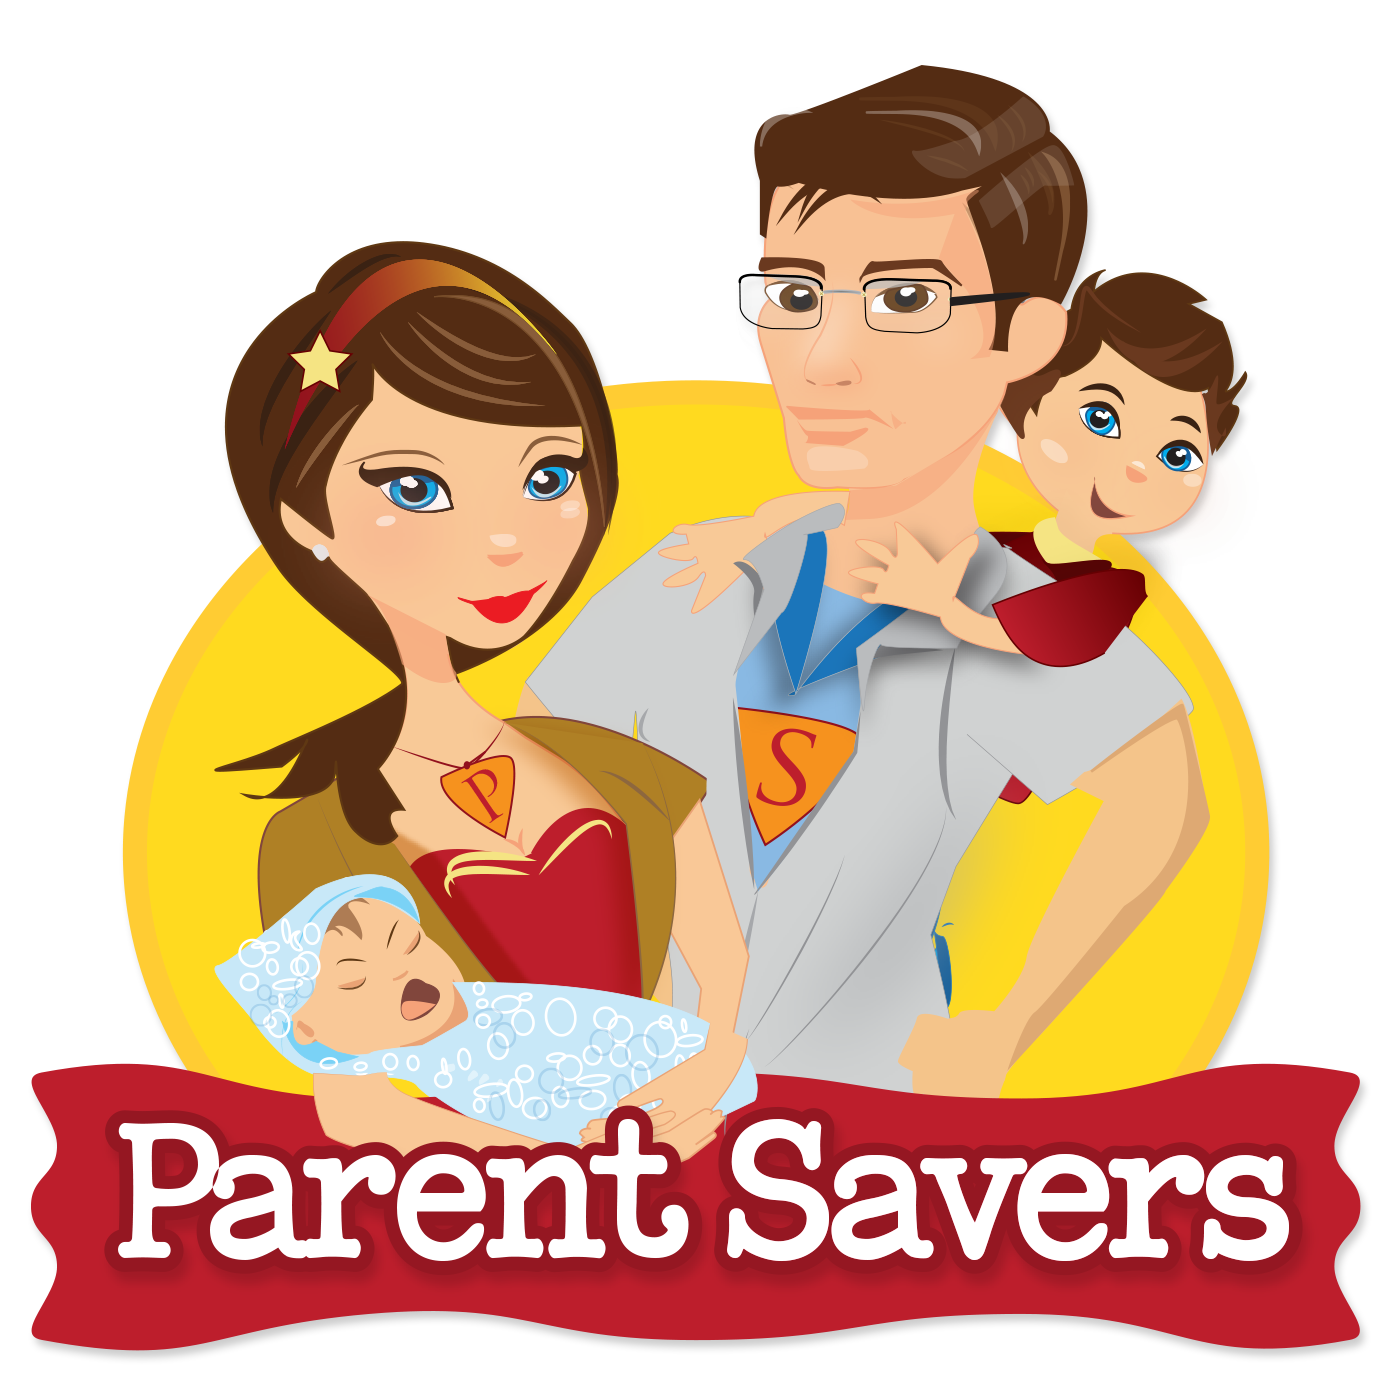 parent savers logo.png